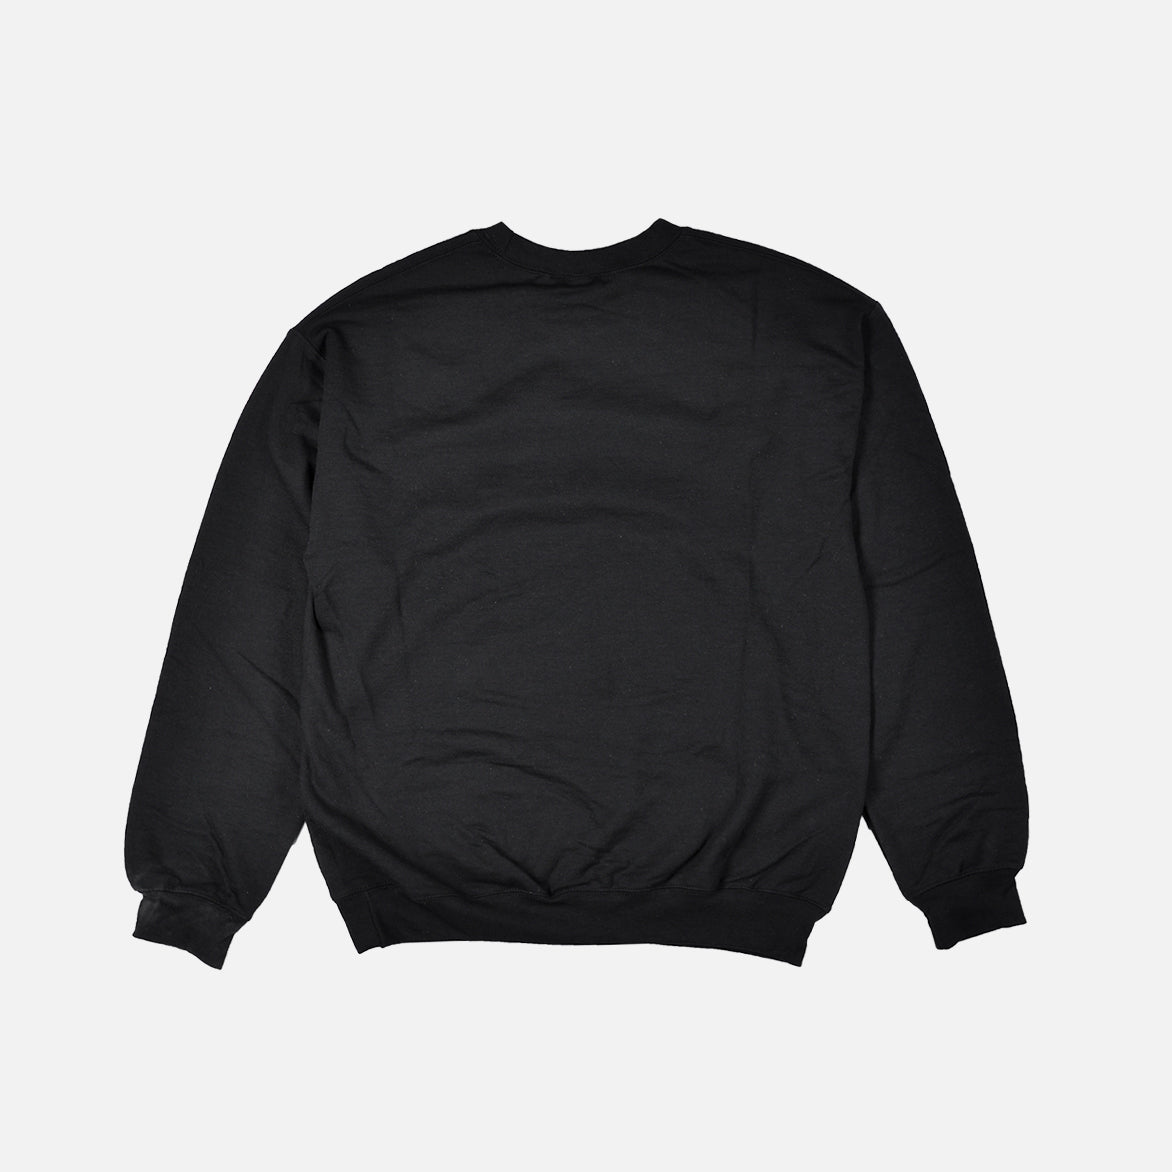 VARSITY CREWNECK - BLACK / TAN